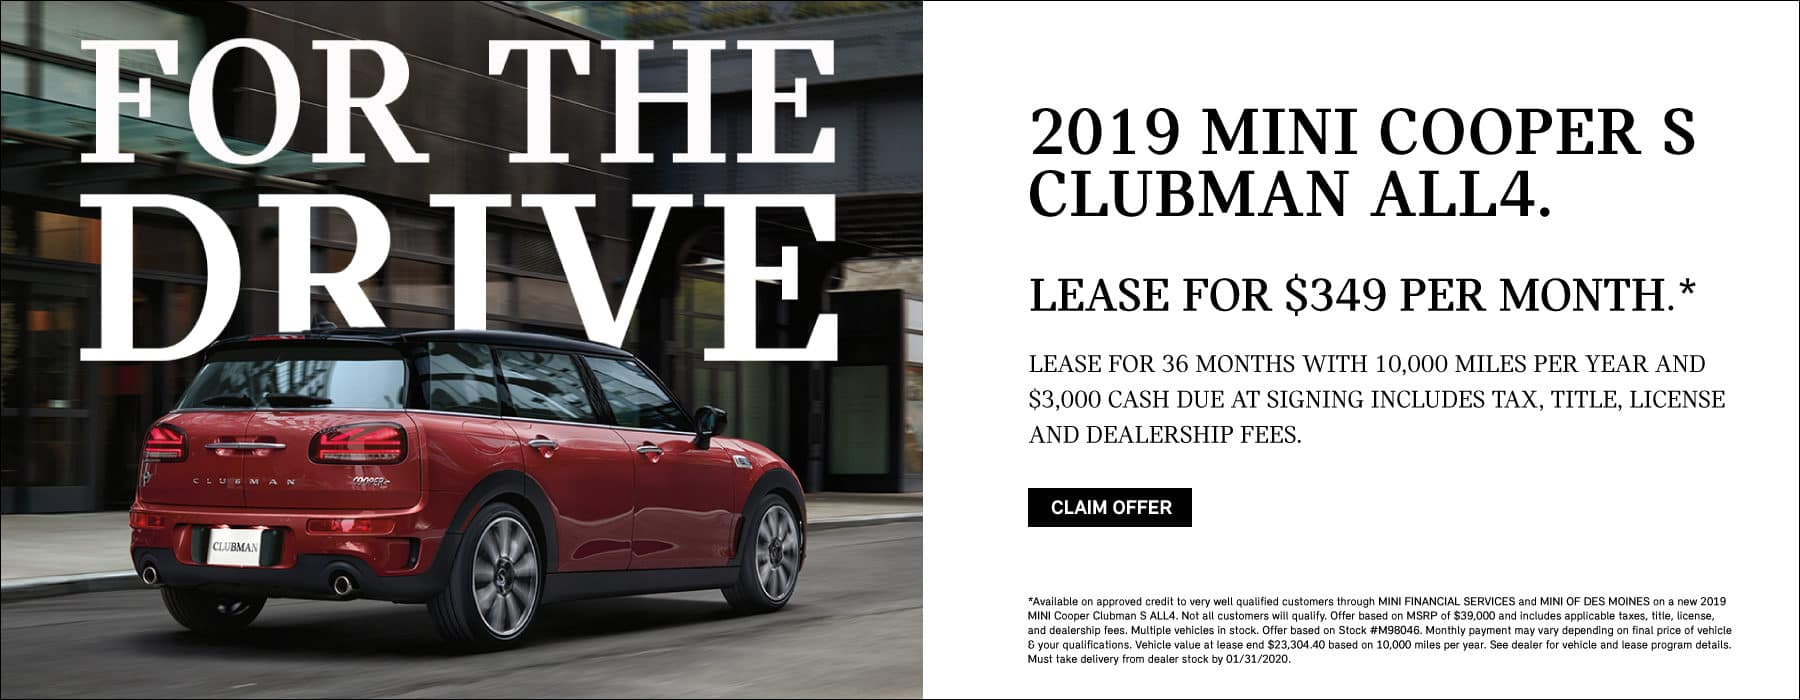 LEASE A 2019 MINI COOPER S CLUBMAN ALL4 FOR $349 PER MONTH.